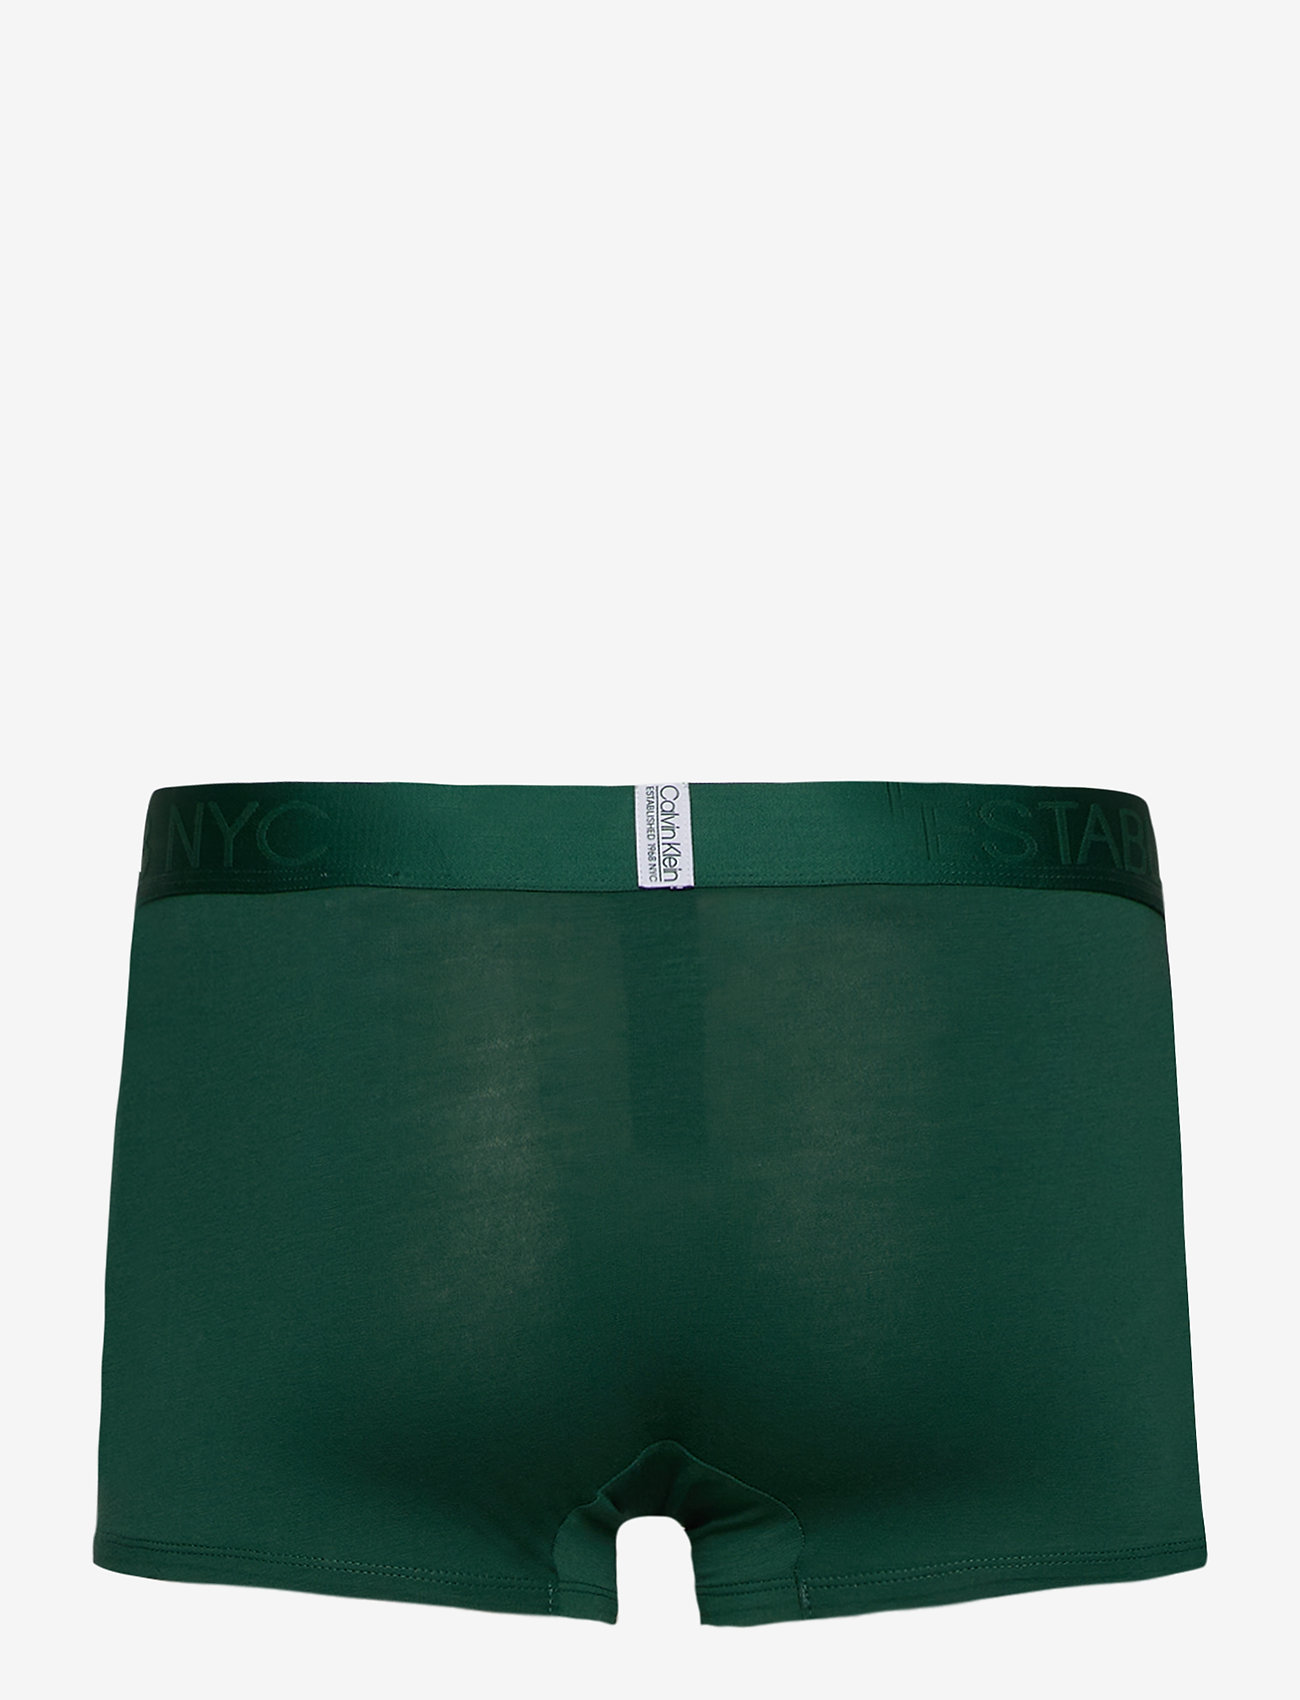 Calvin Klein - TRUNK - boxershorts - alligator - 1